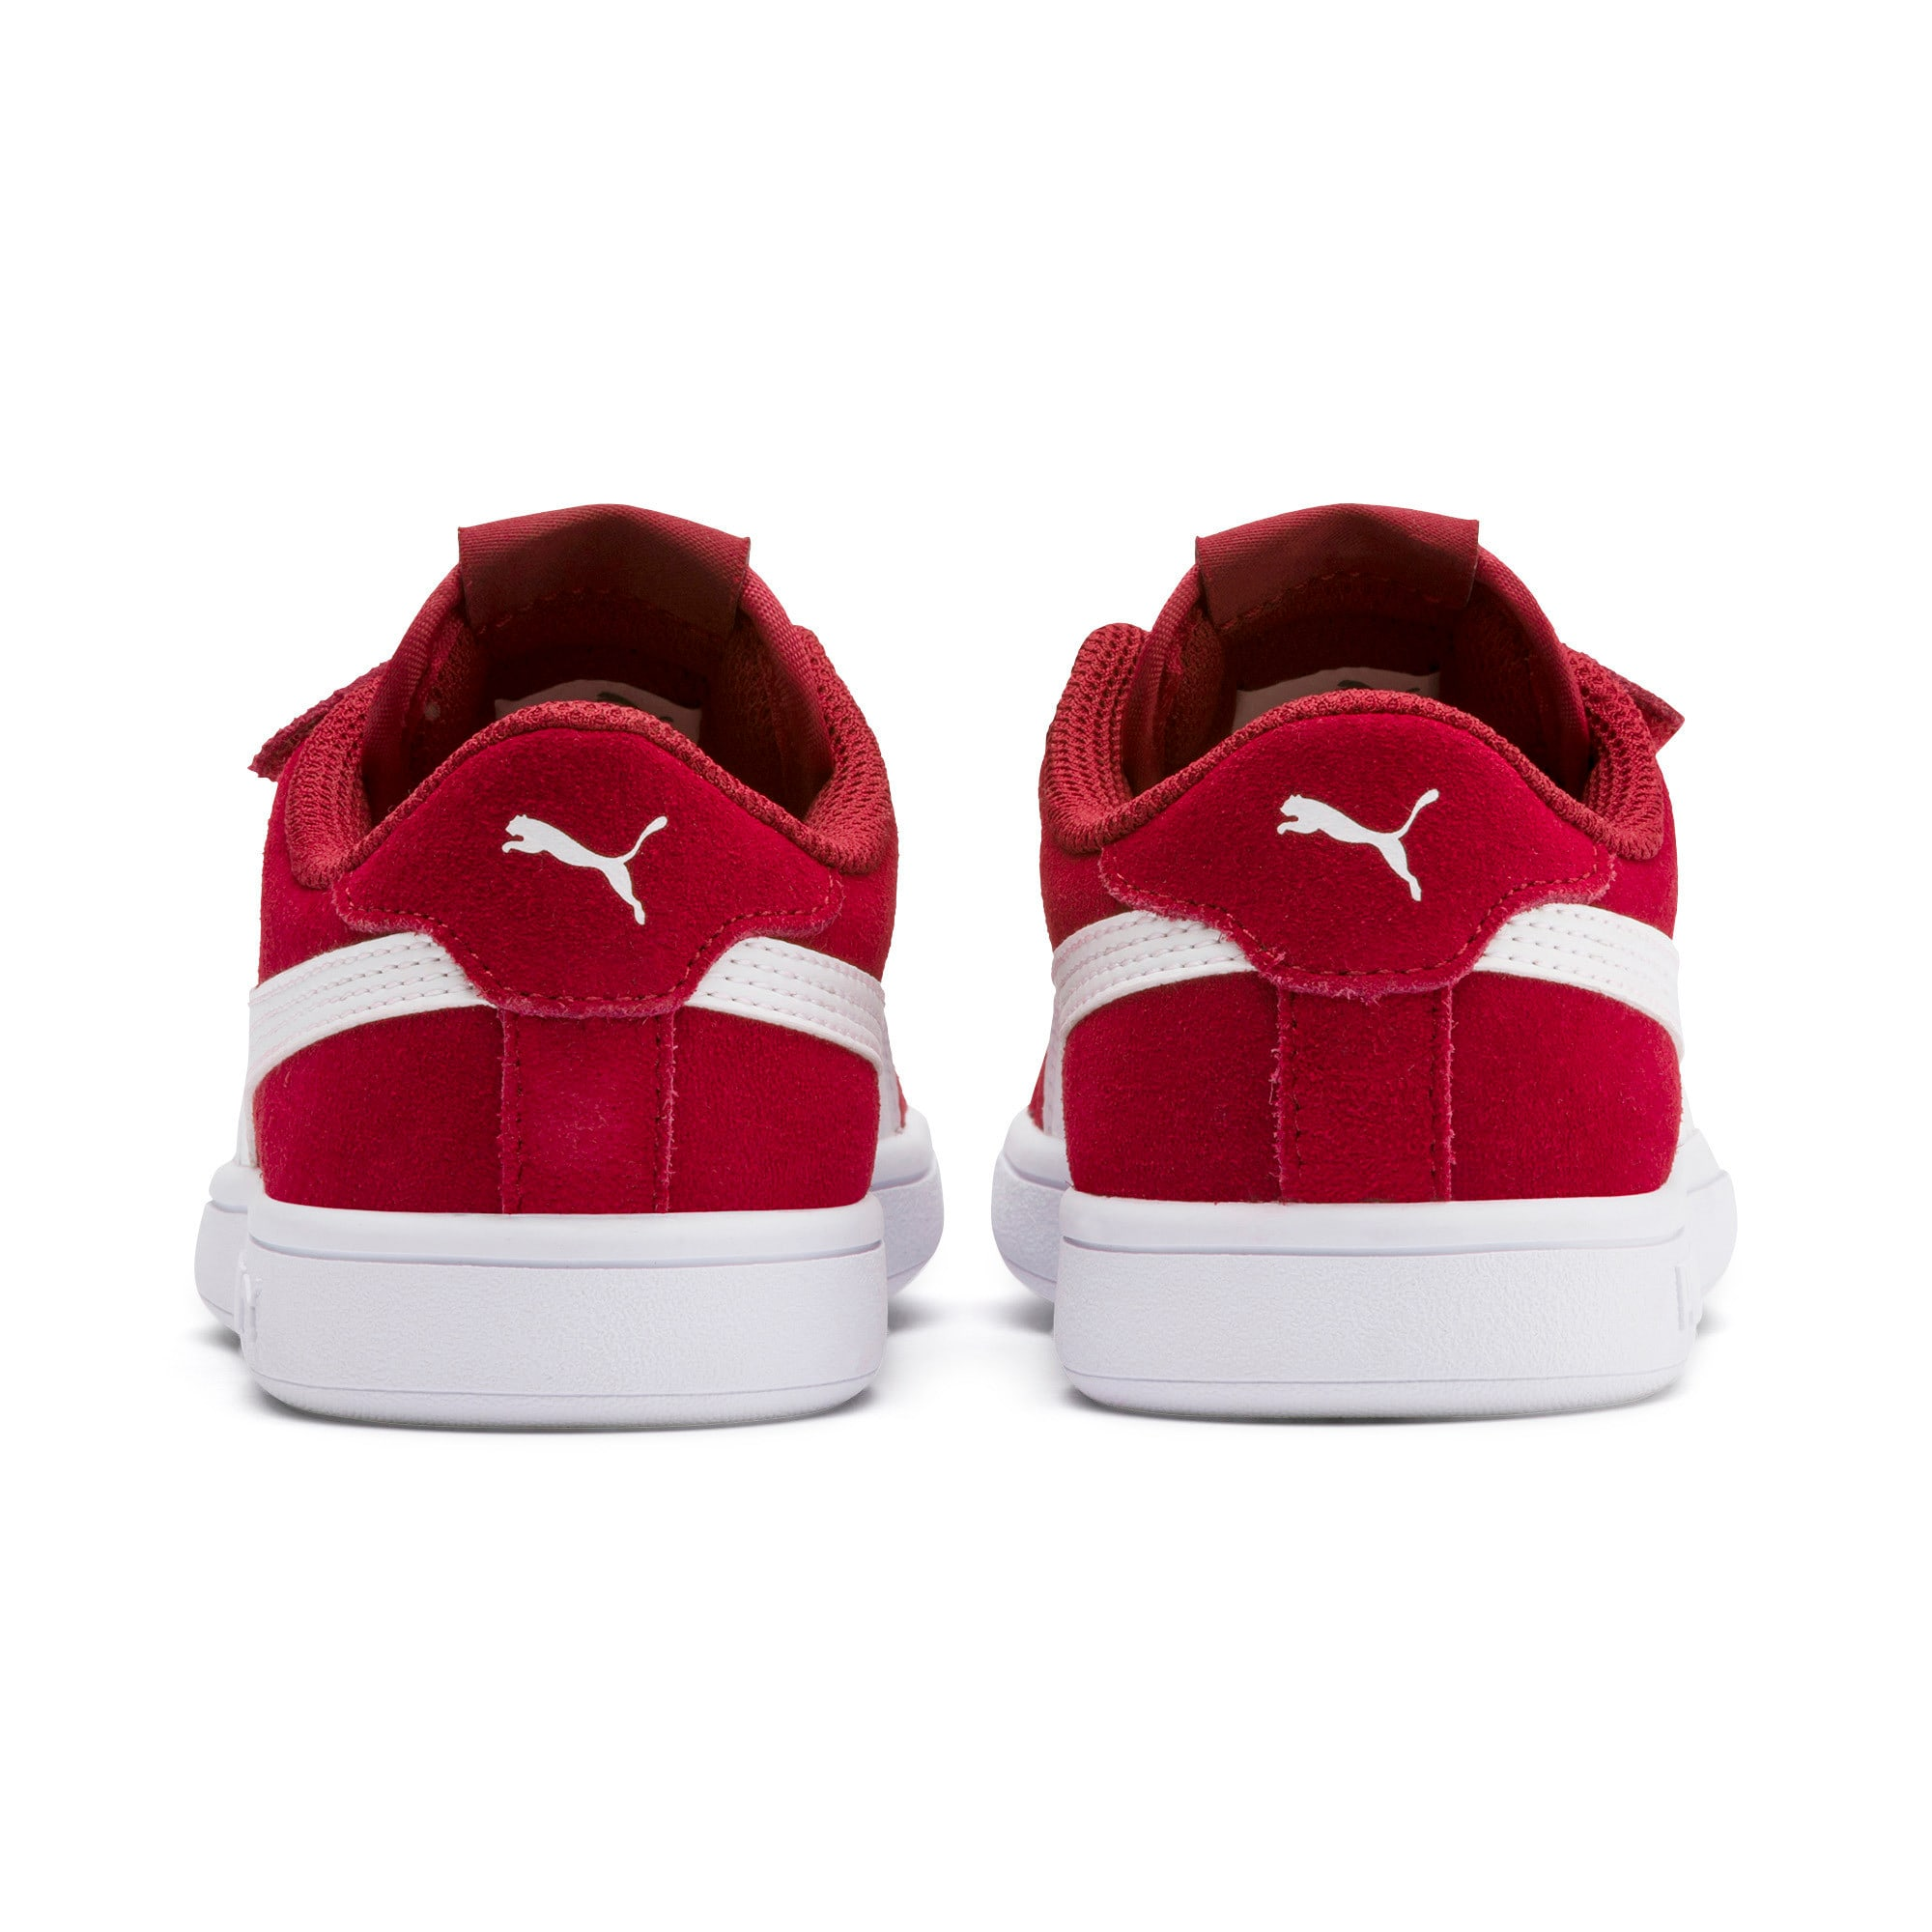 Thumbnail 3 of Smash v2 Suede Little Kids' Shoes, Rhubarb-Puma White, medium